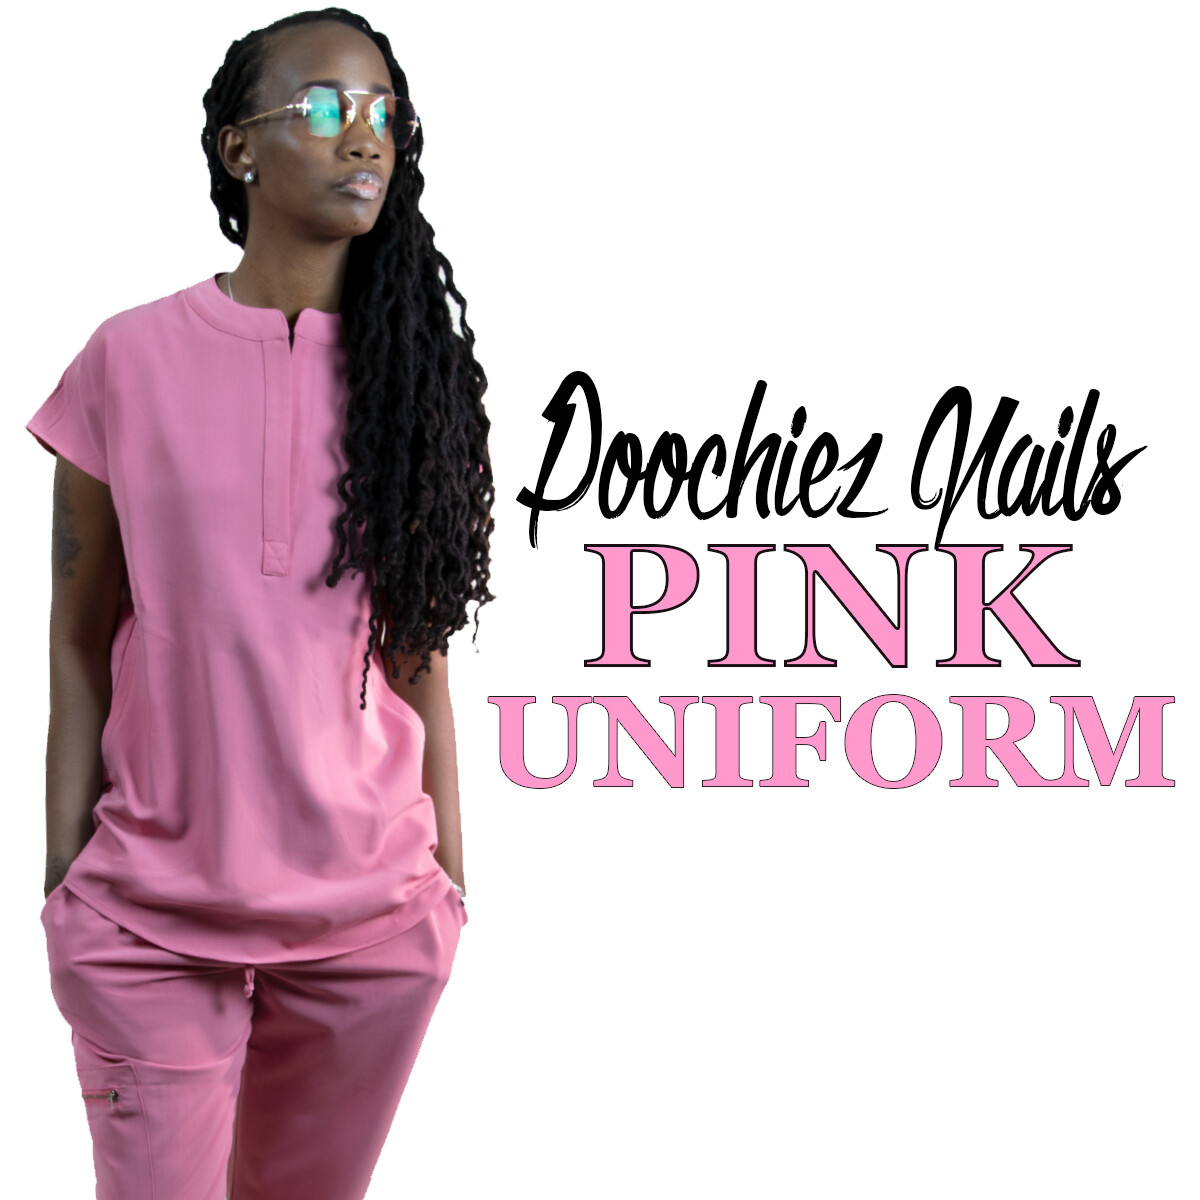 #2 POOCHIEZ PINK UNIFORM